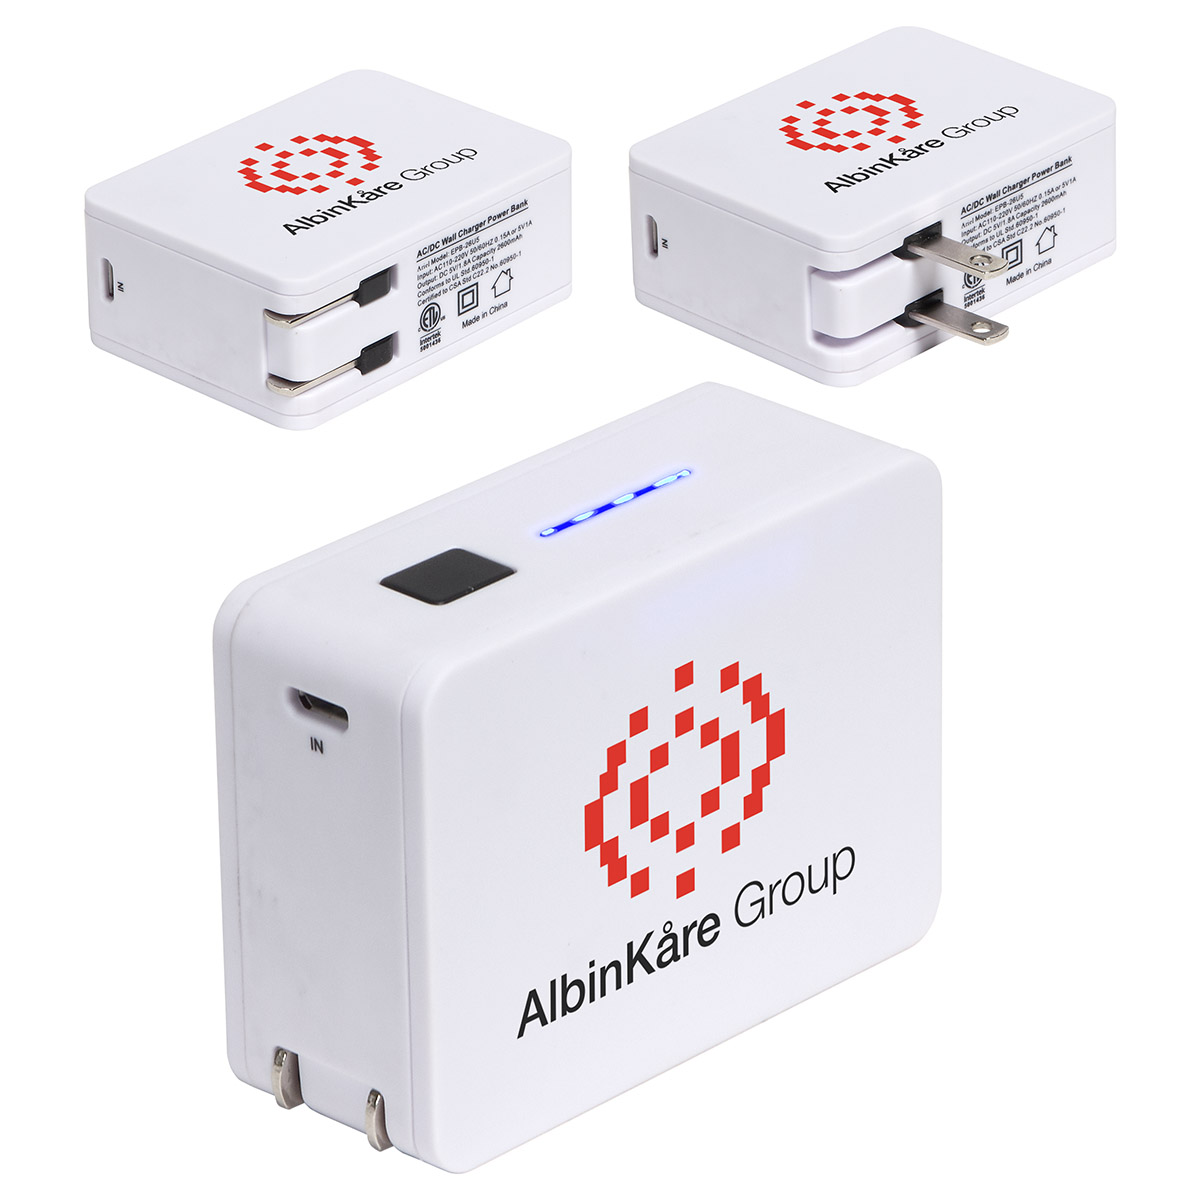 2-in-1 USB Wall Charger Power Bank - 2600mAh, EPB-26U5 - 1 Colour Imprint